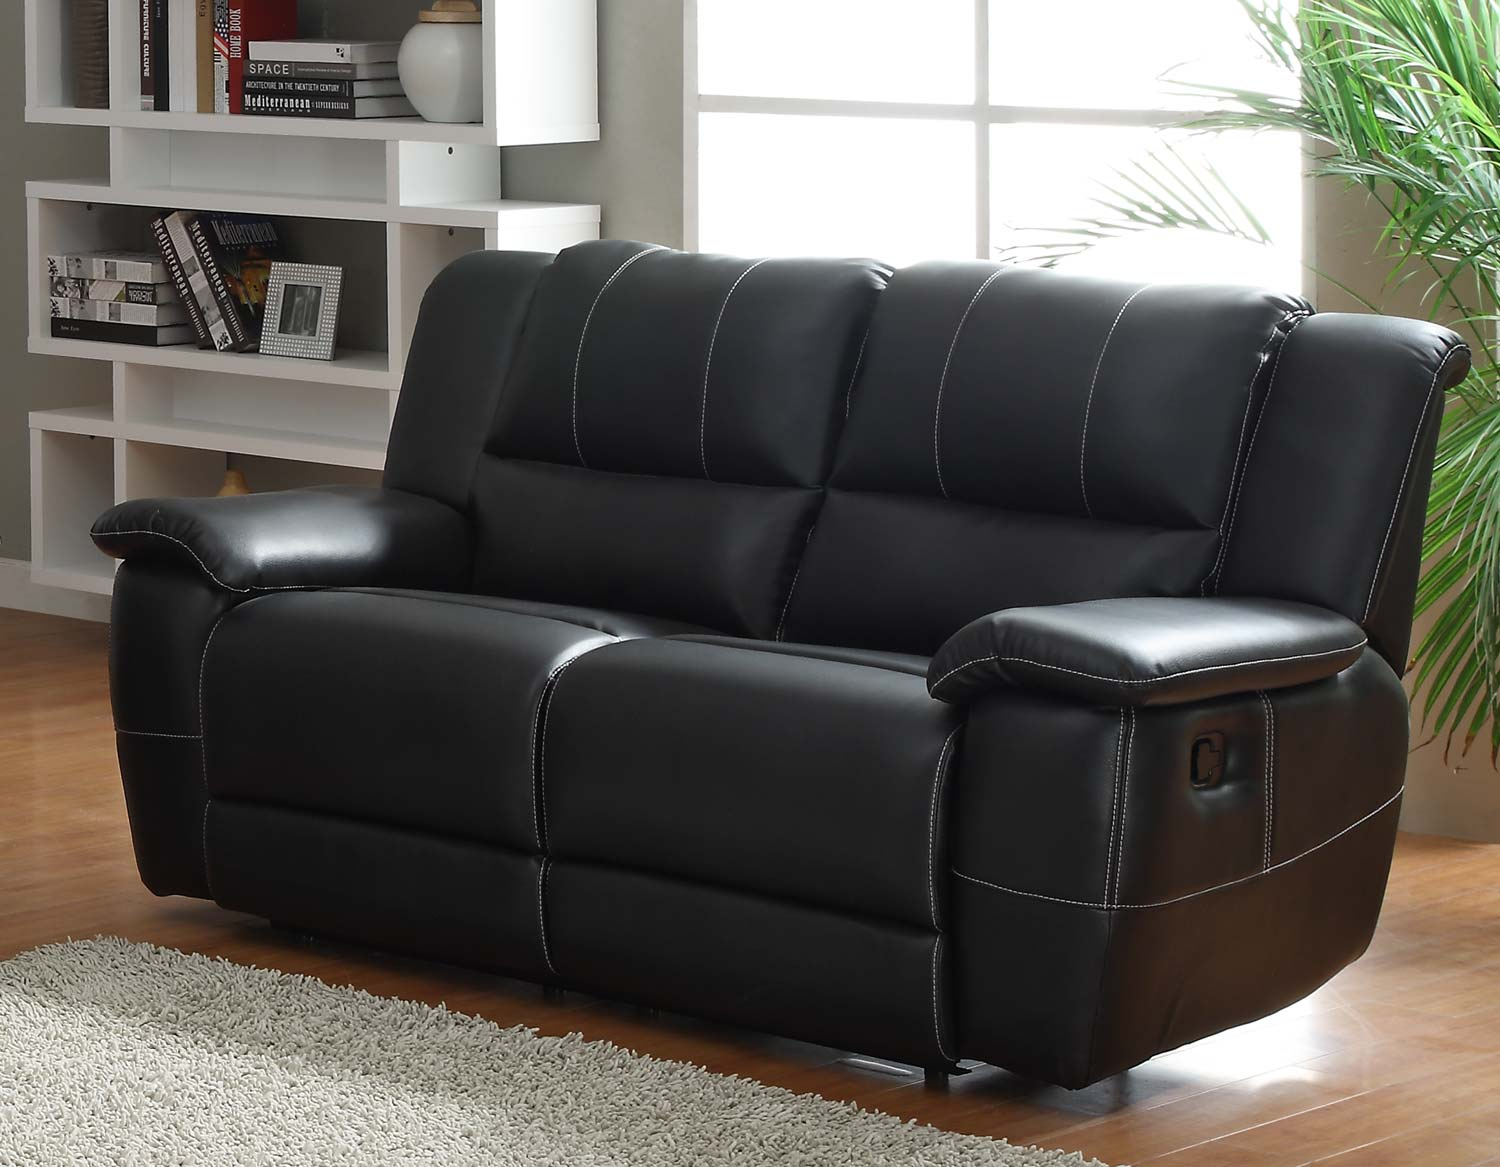 Homelegance Cantrell Reclining Sofa Set Black Bonded Leather Match U9778blk 3 At: leather loveseat recliners